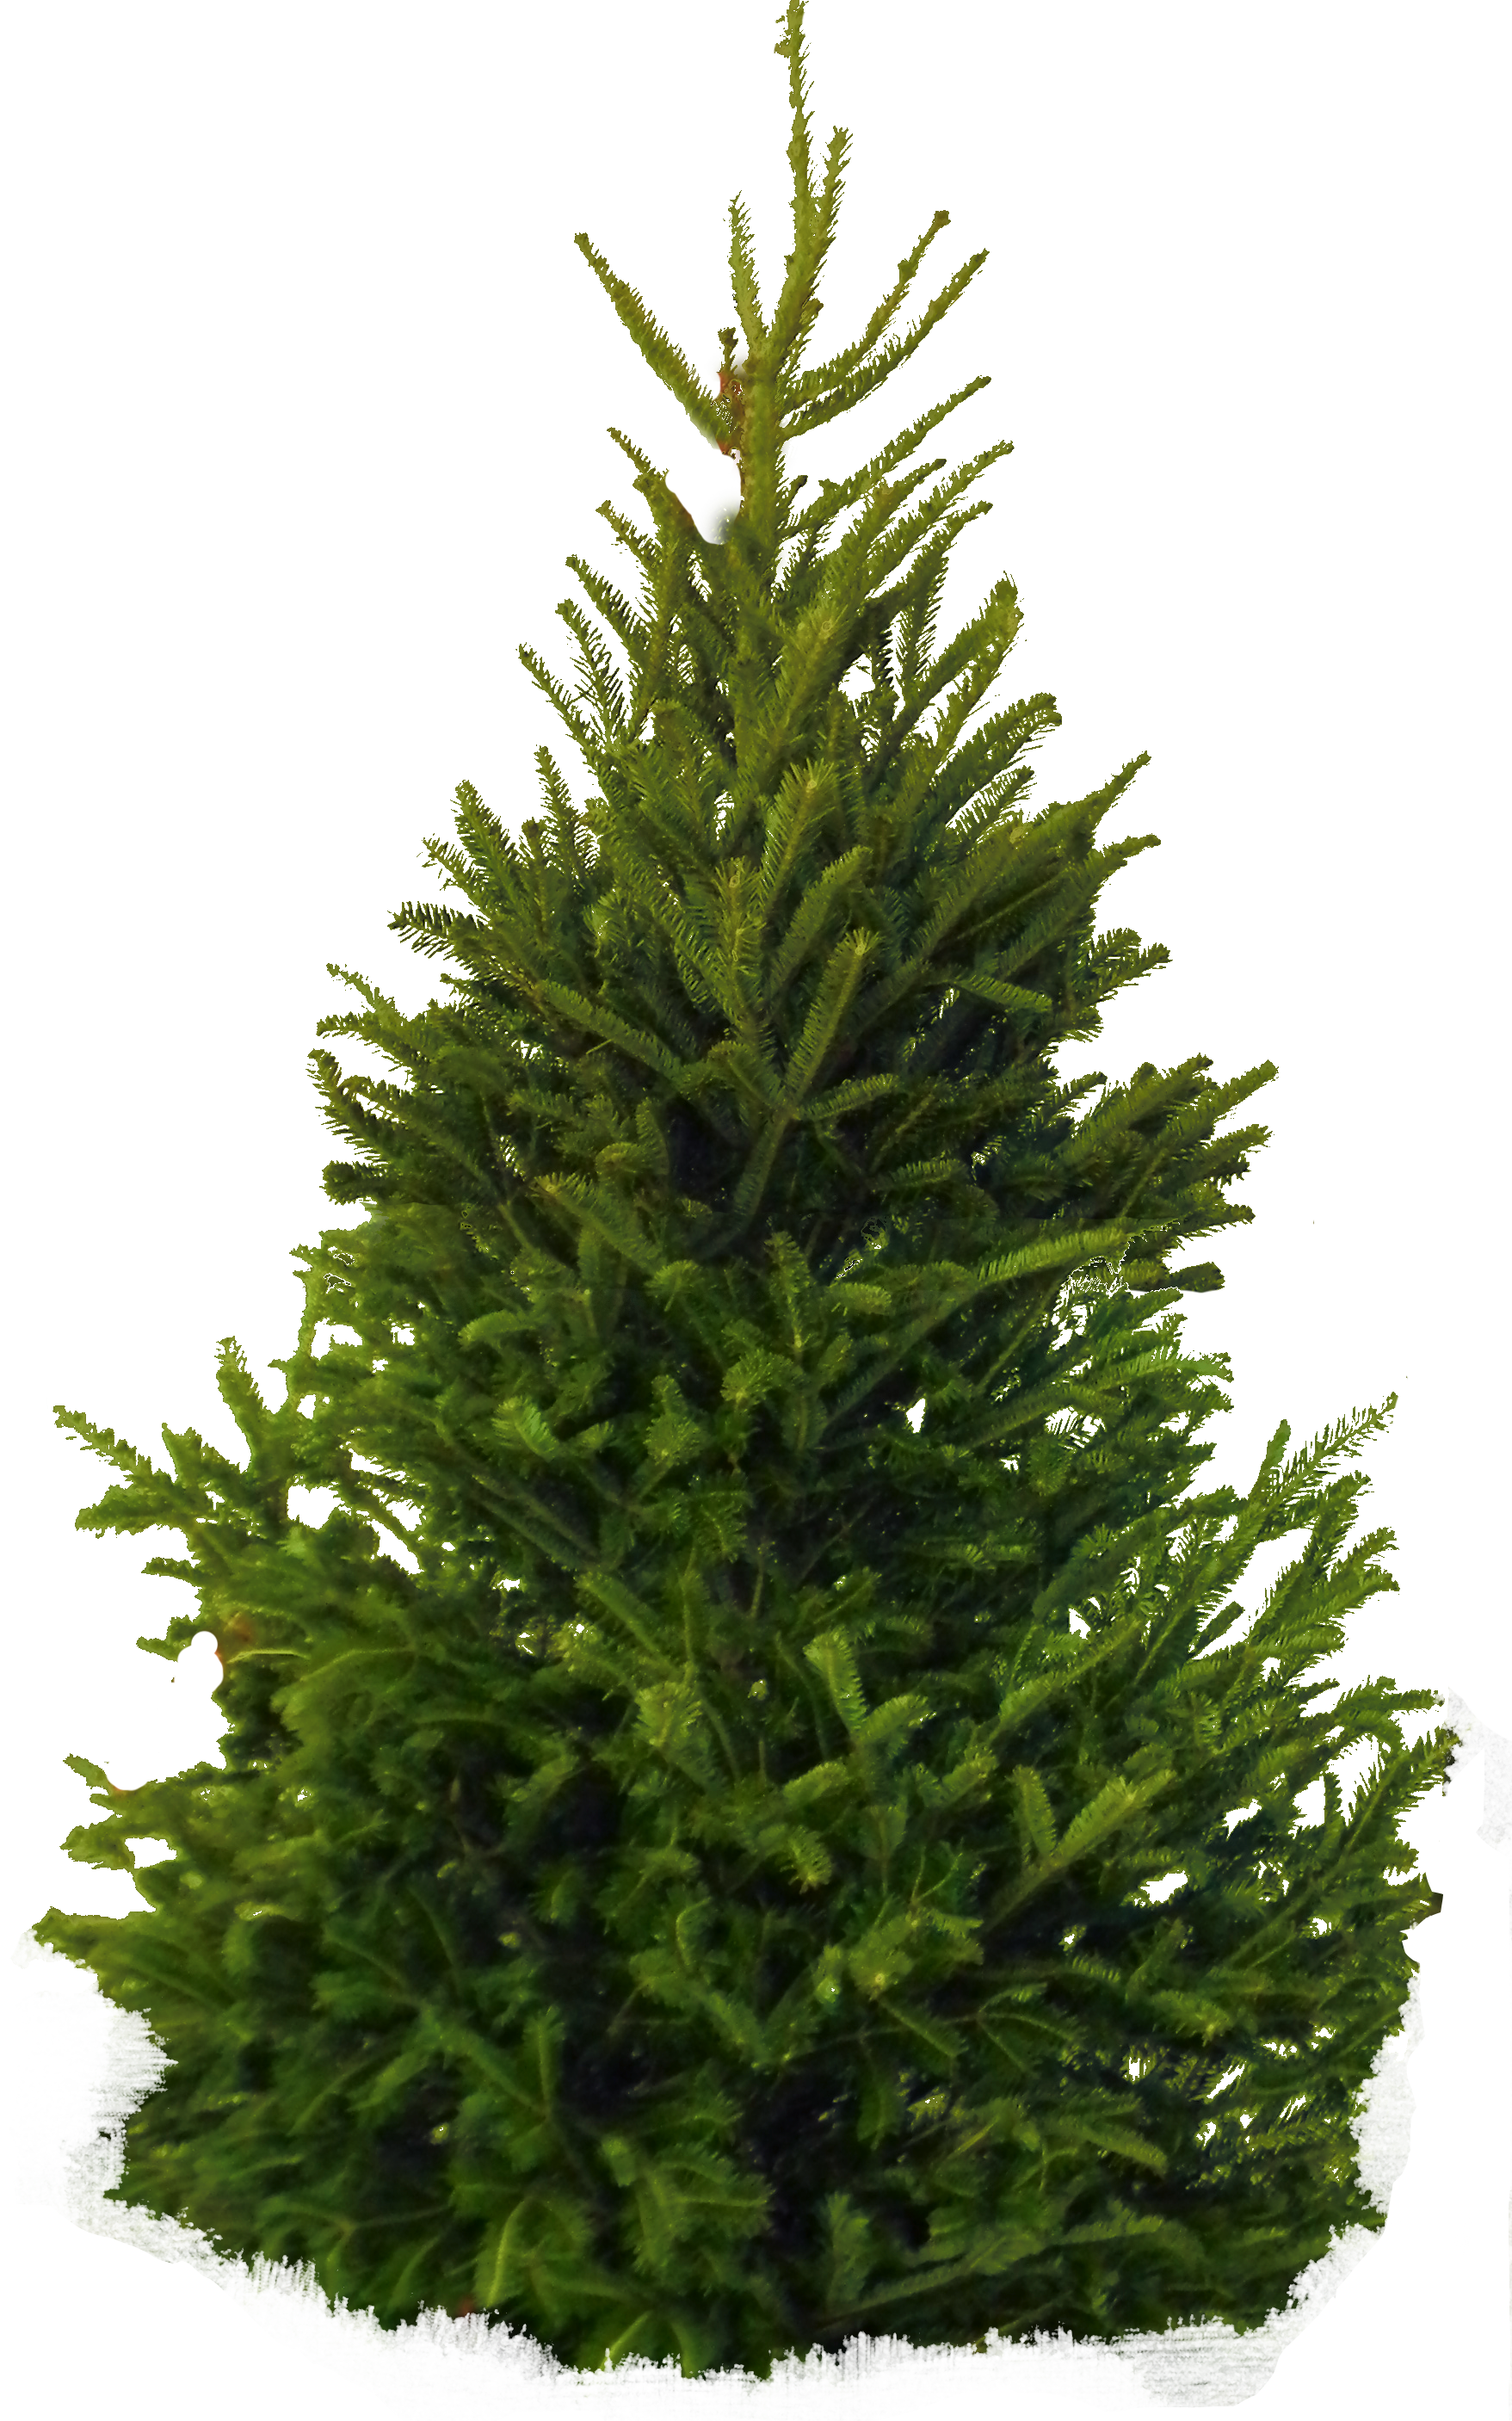 Fir Tree PNG Image - PurePNG | Free transparent CC0 PNG ...